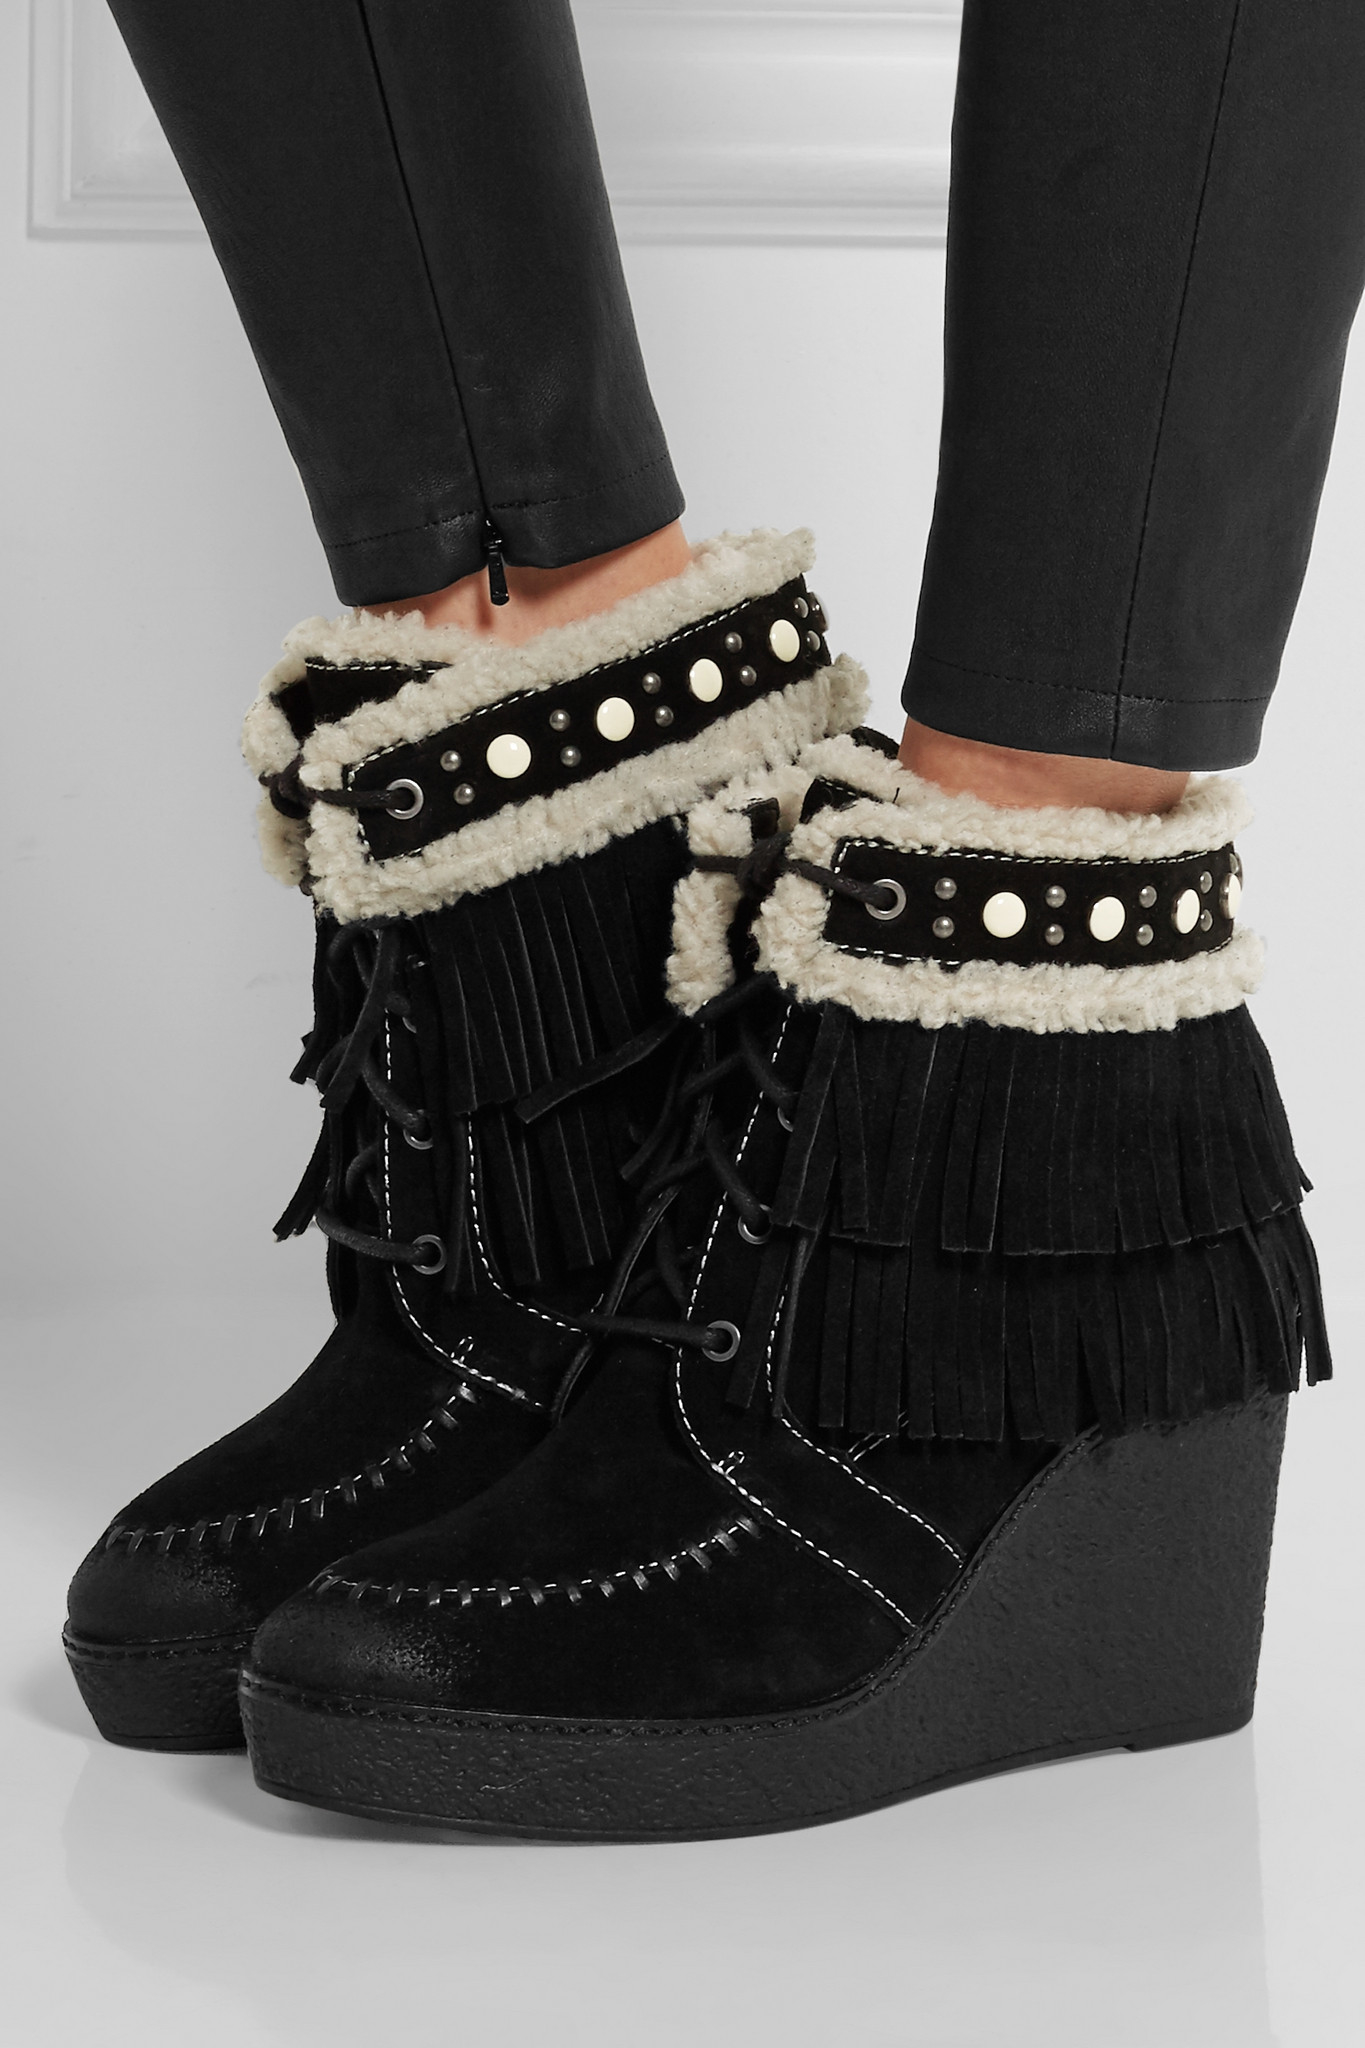 08695e11b Lyst - Sam Edelman Kemper Faux Shearling-lined Fringed Suede Wedge ...